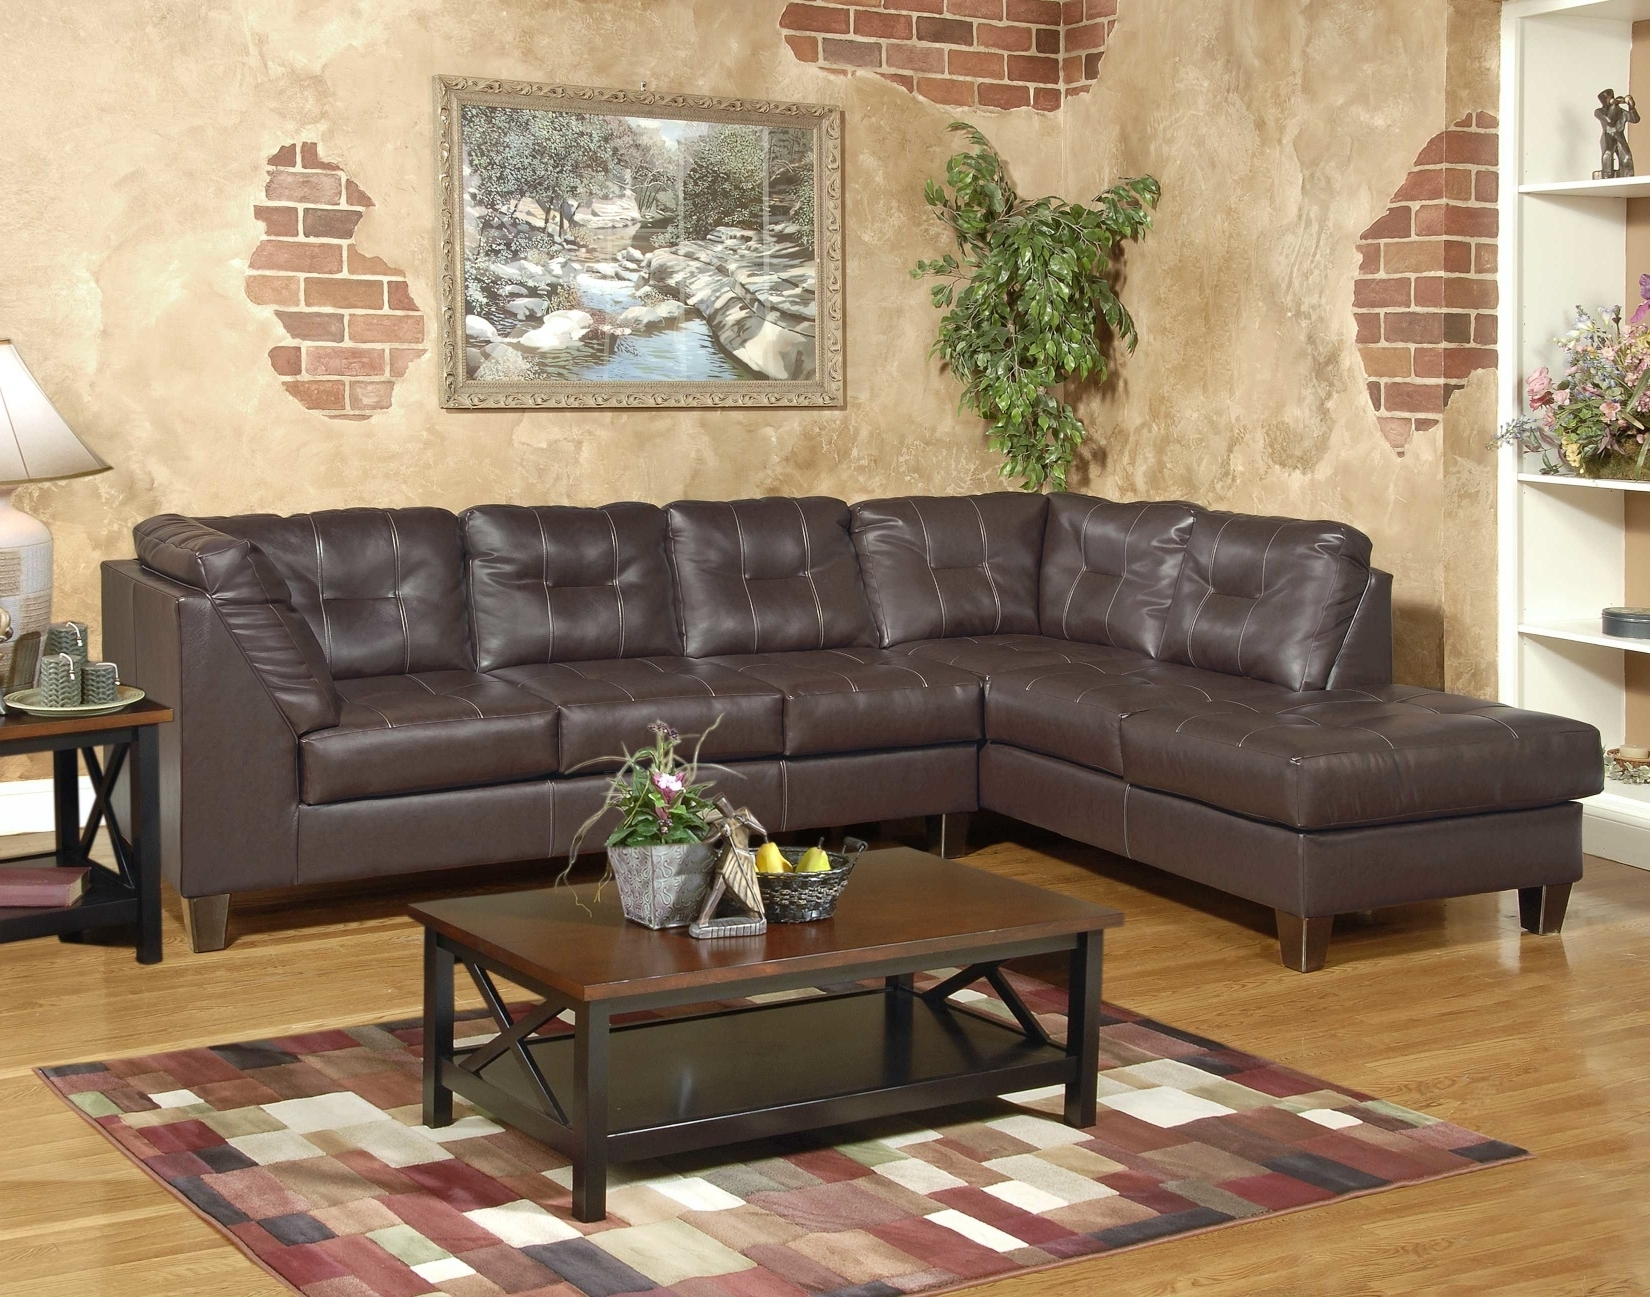 Discount Furniture And Mattresses – Tallahassee Furniture Direct With Regard To Well Known Tallahassee Sectional Sofas (View 8 of 15)